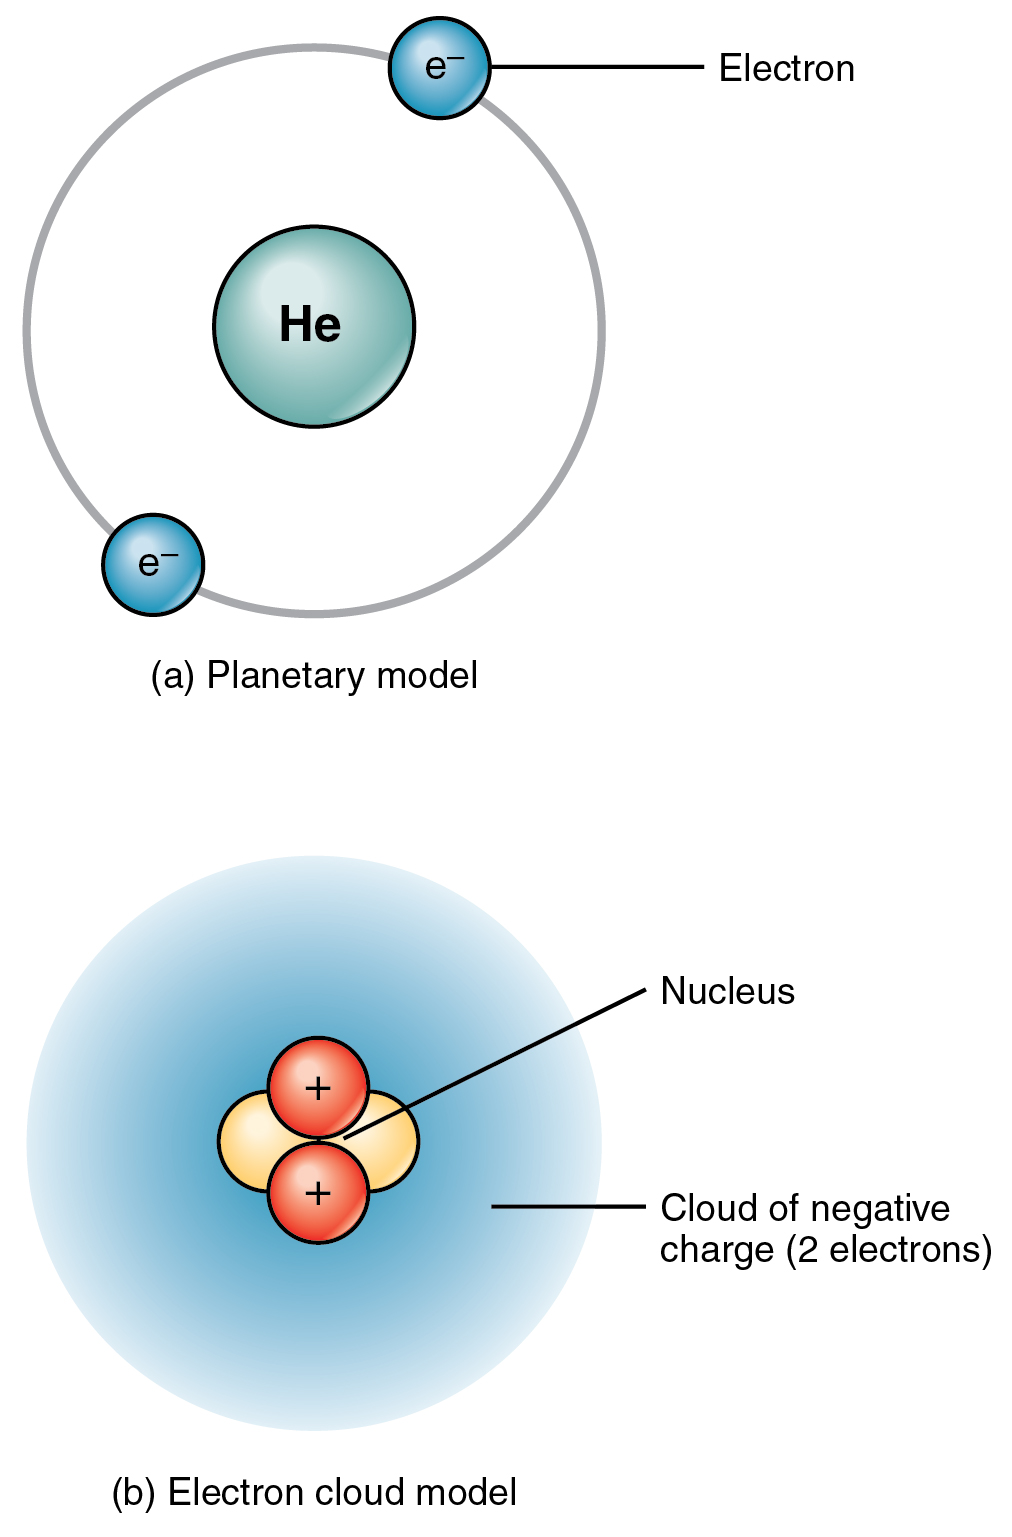 The top panel of this figure shows two electrons orbiting around the nucleus of a Helium atom. The bottom panel of this figure shows a cloud of electrons surrounding the nucleus of a Helium atom.